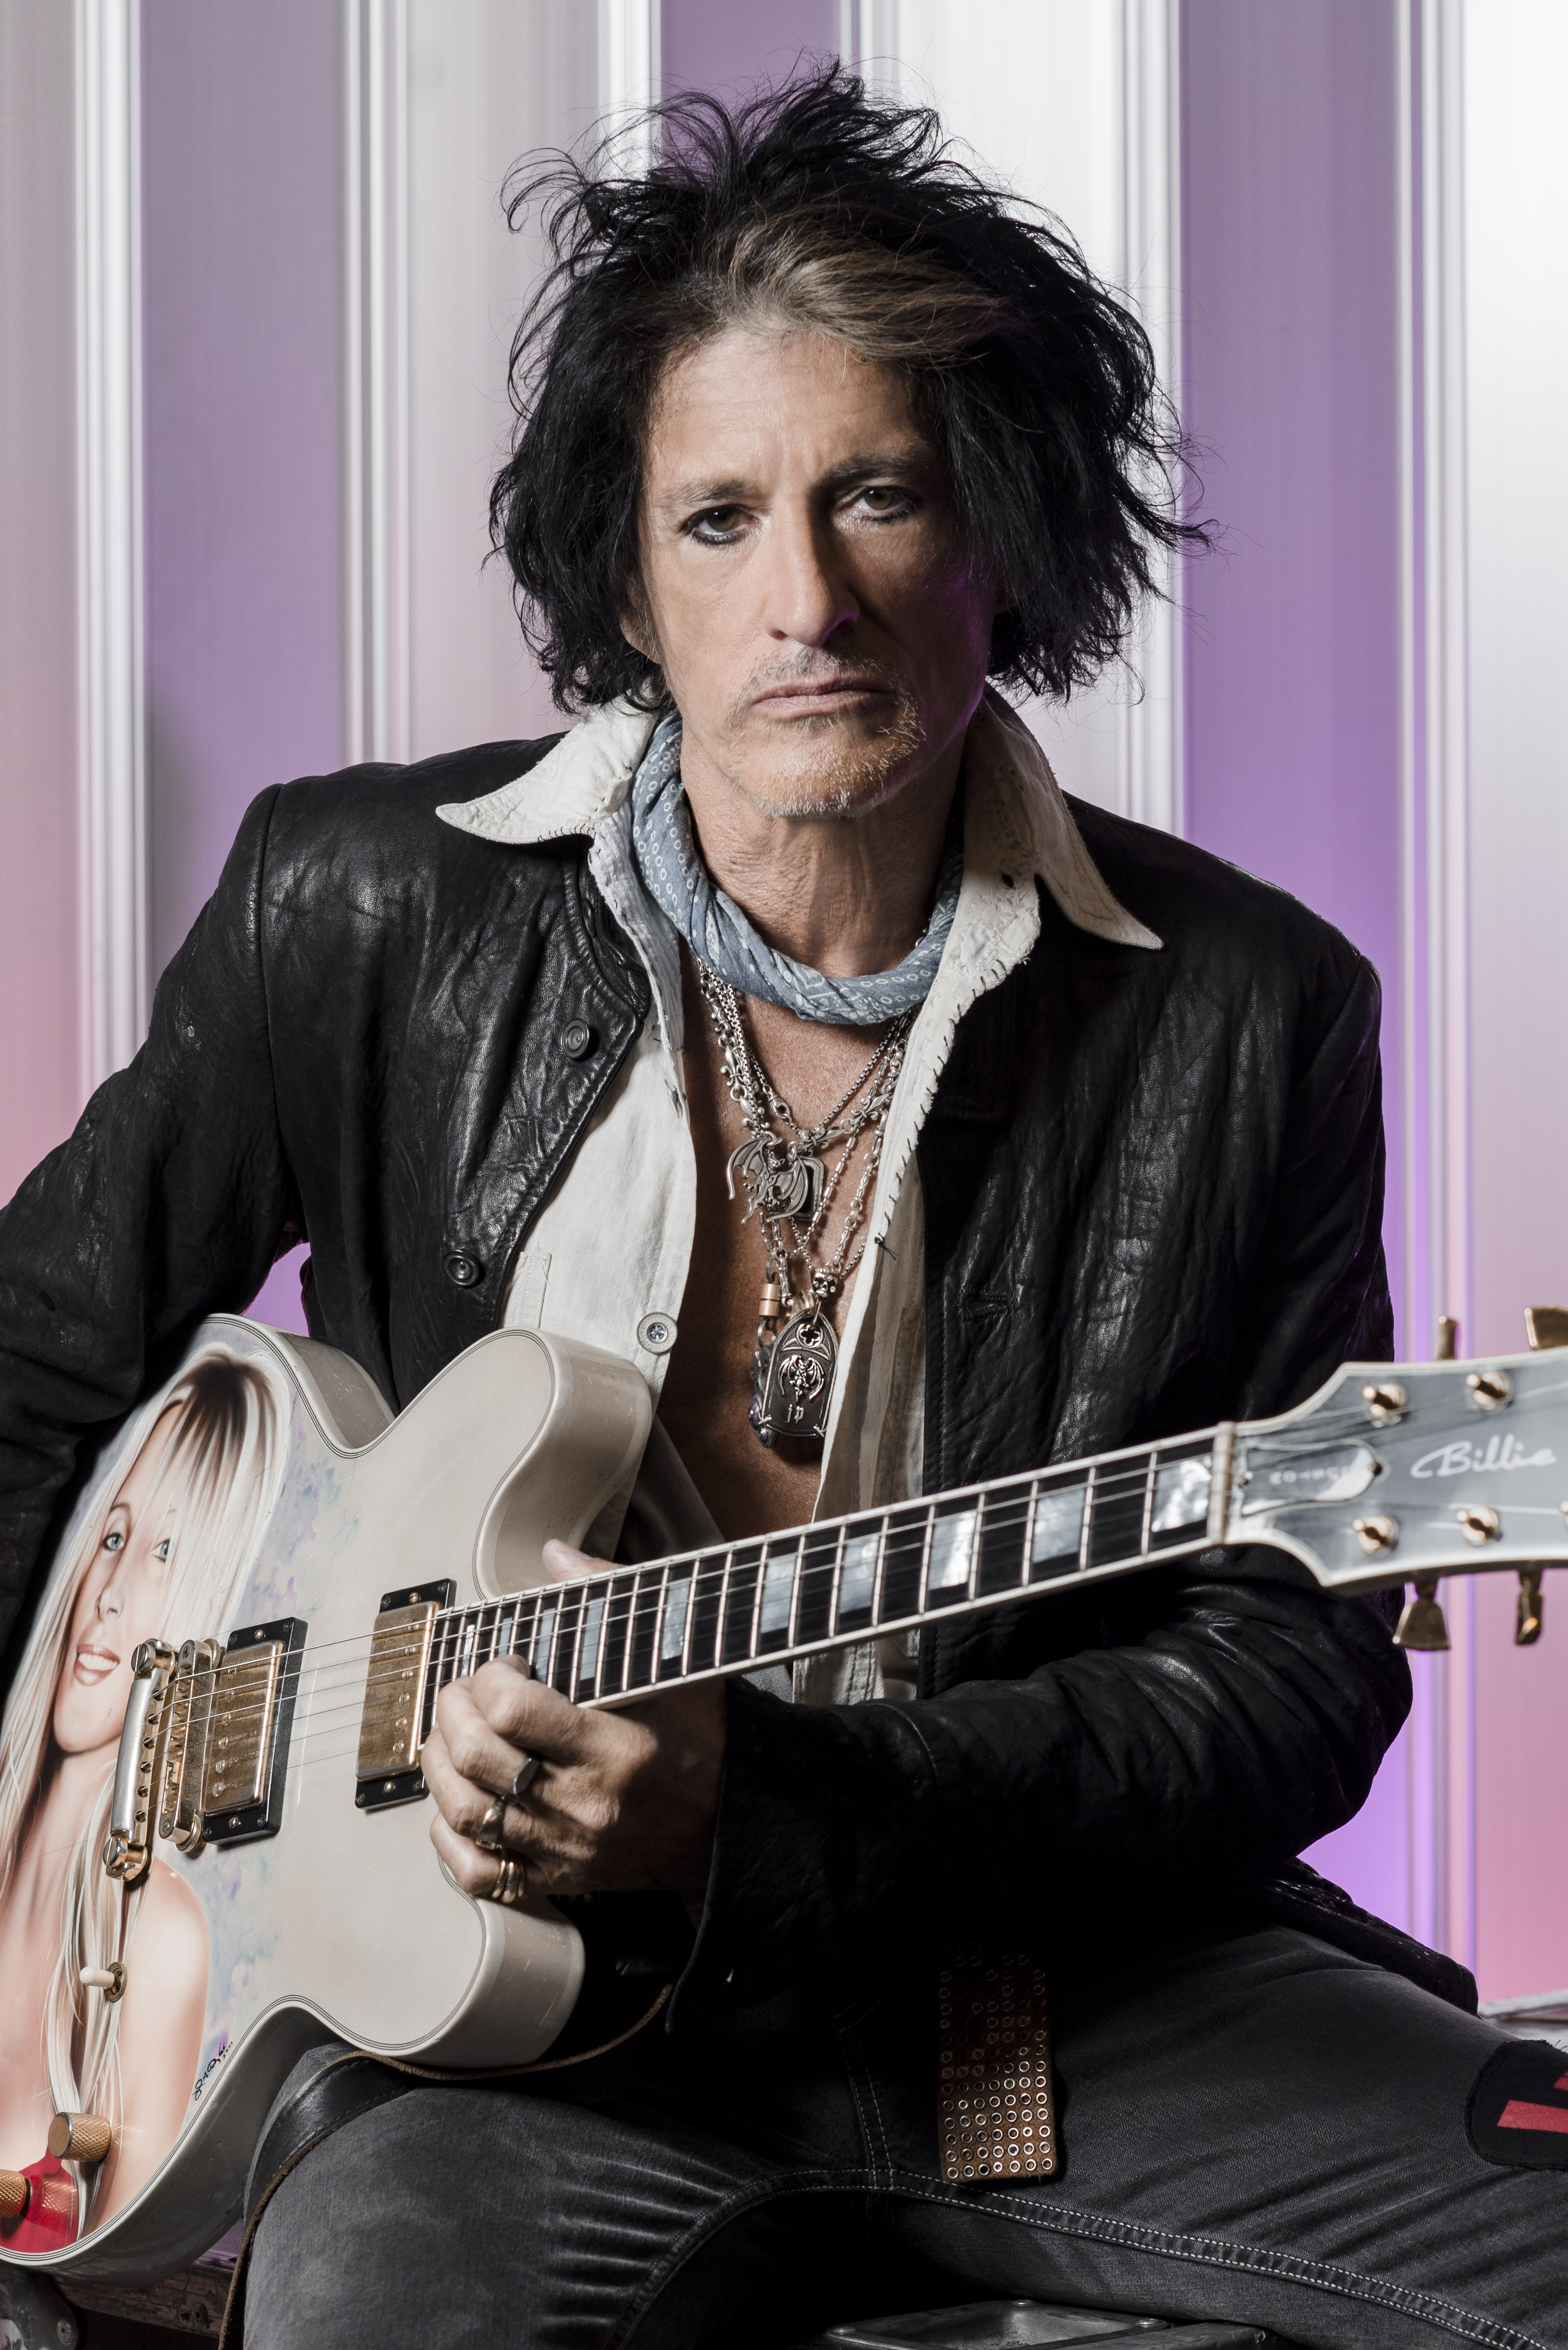 joe-perry-socials-website-only-eleanor-jane-photography-dark-triumph.jpg